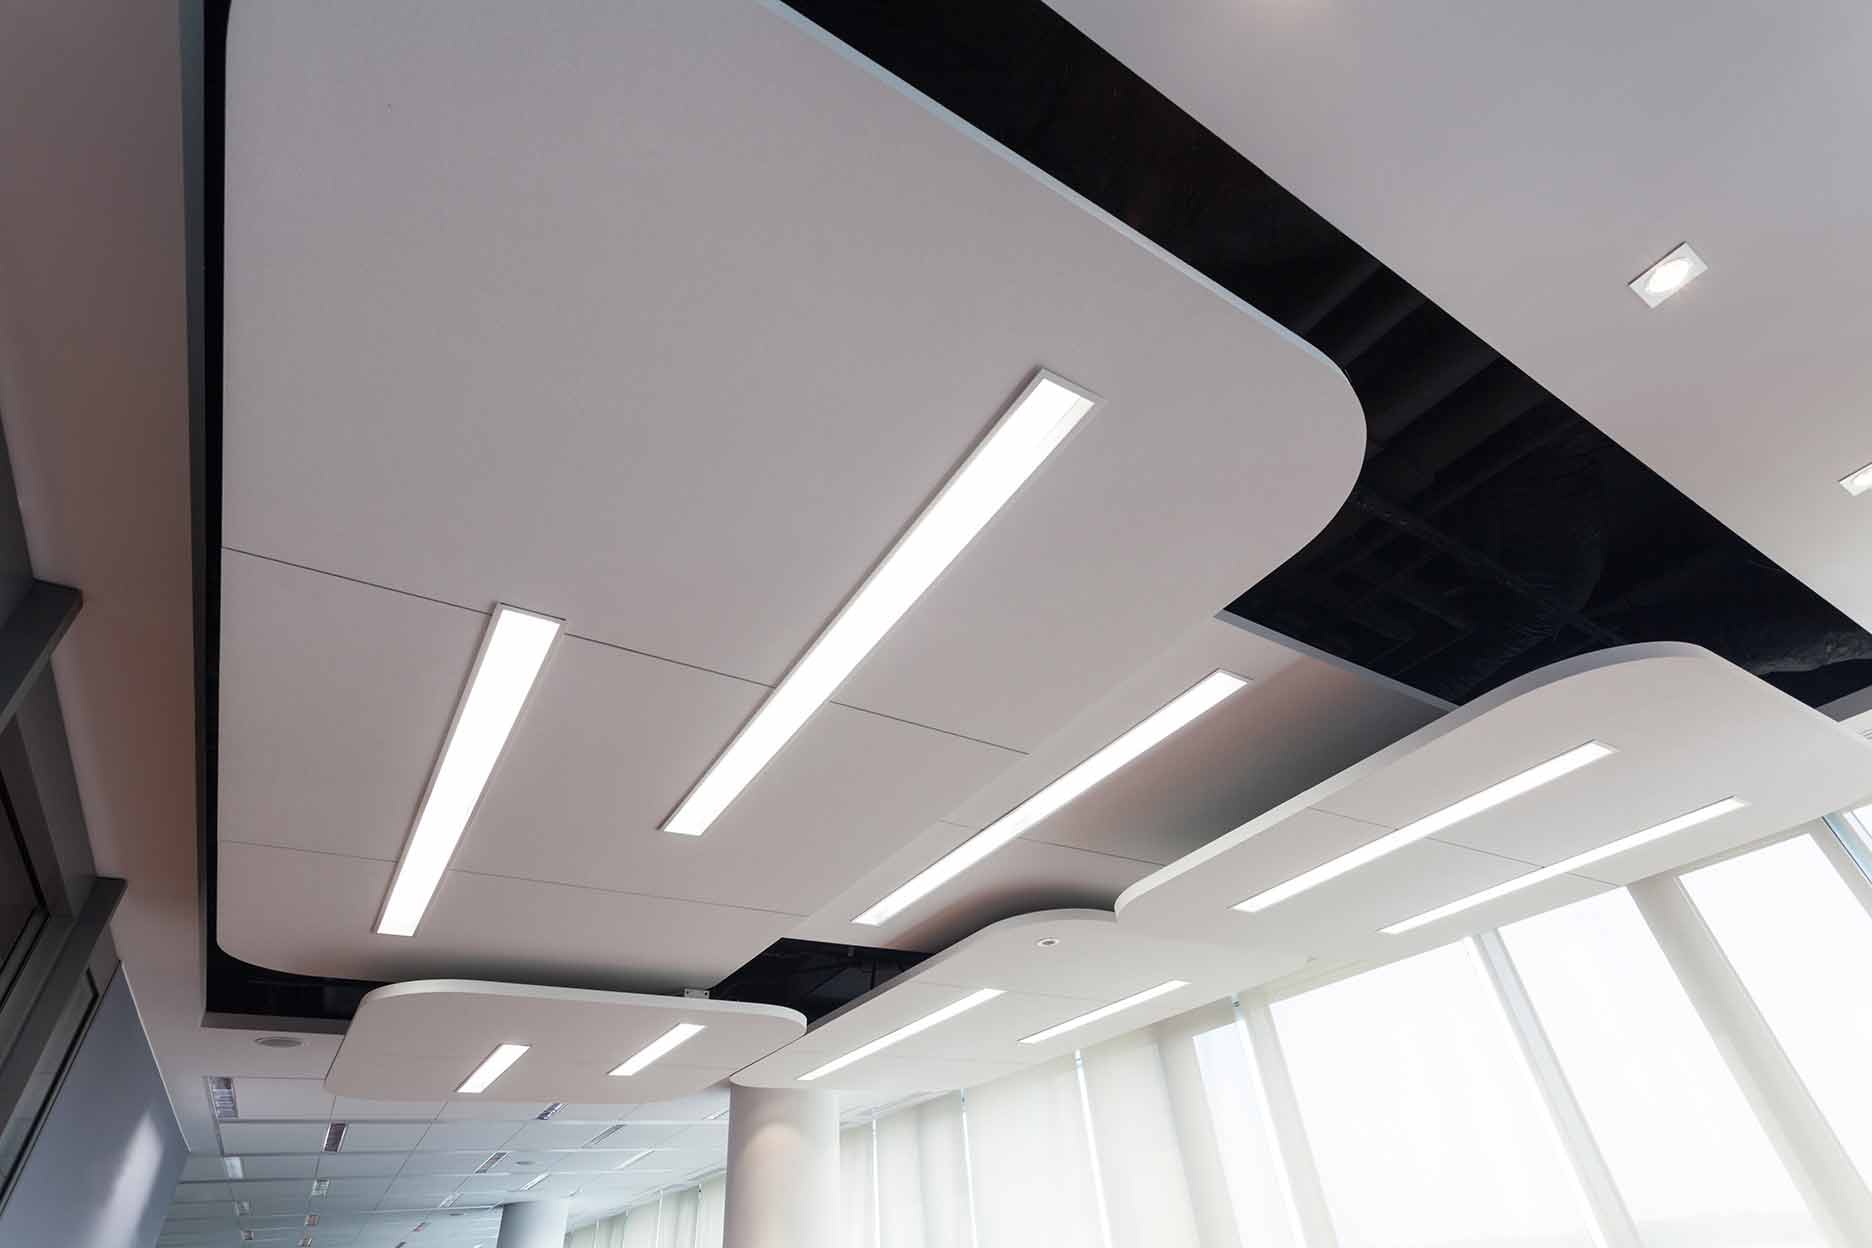 Suspended Acoustic Office Ceiling Wagga Wagga NSW